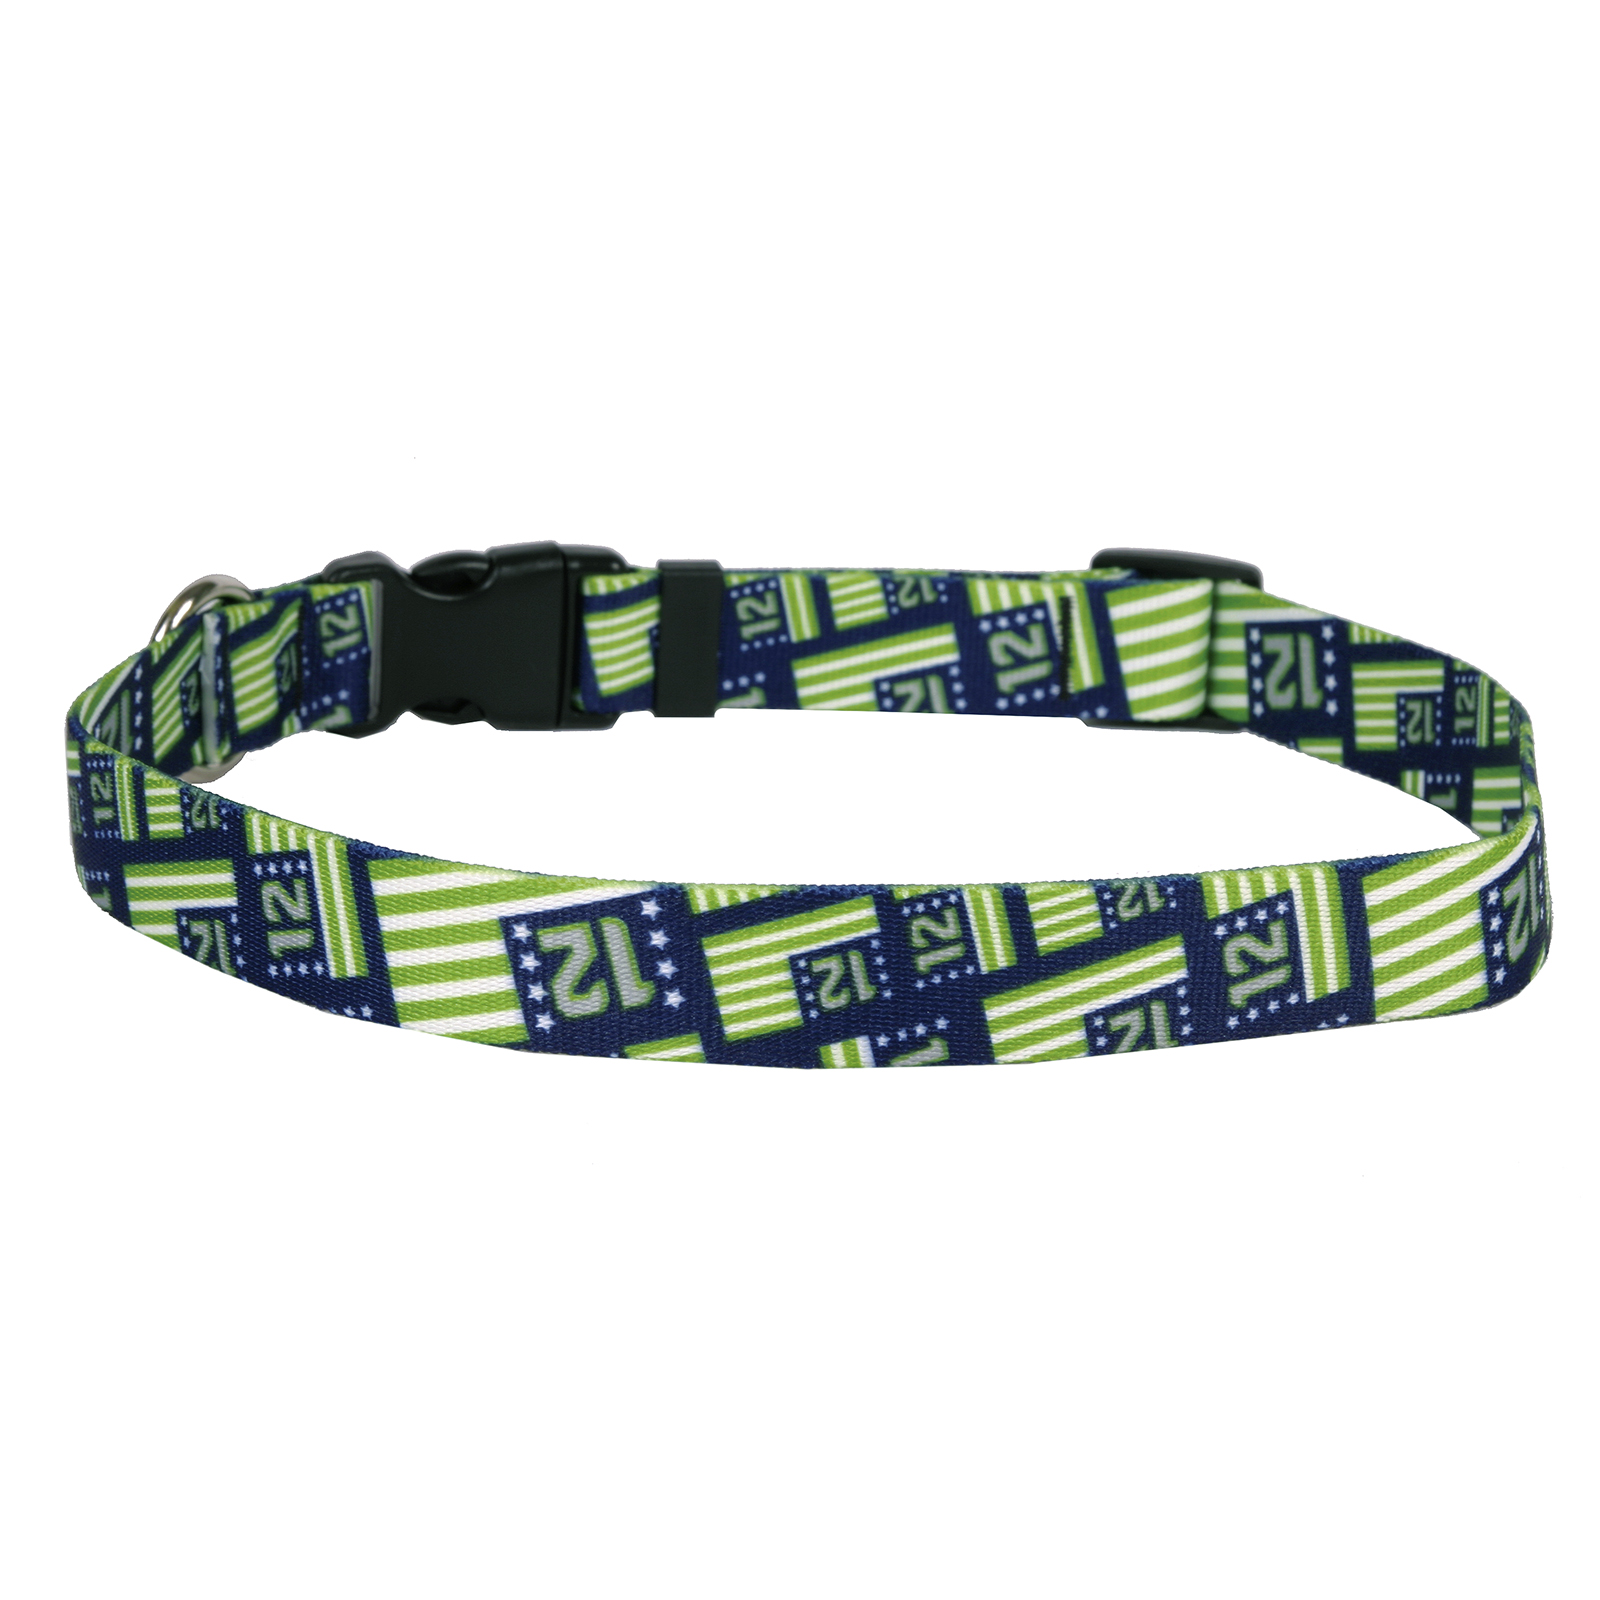 12th Dog Flags Standard Collar